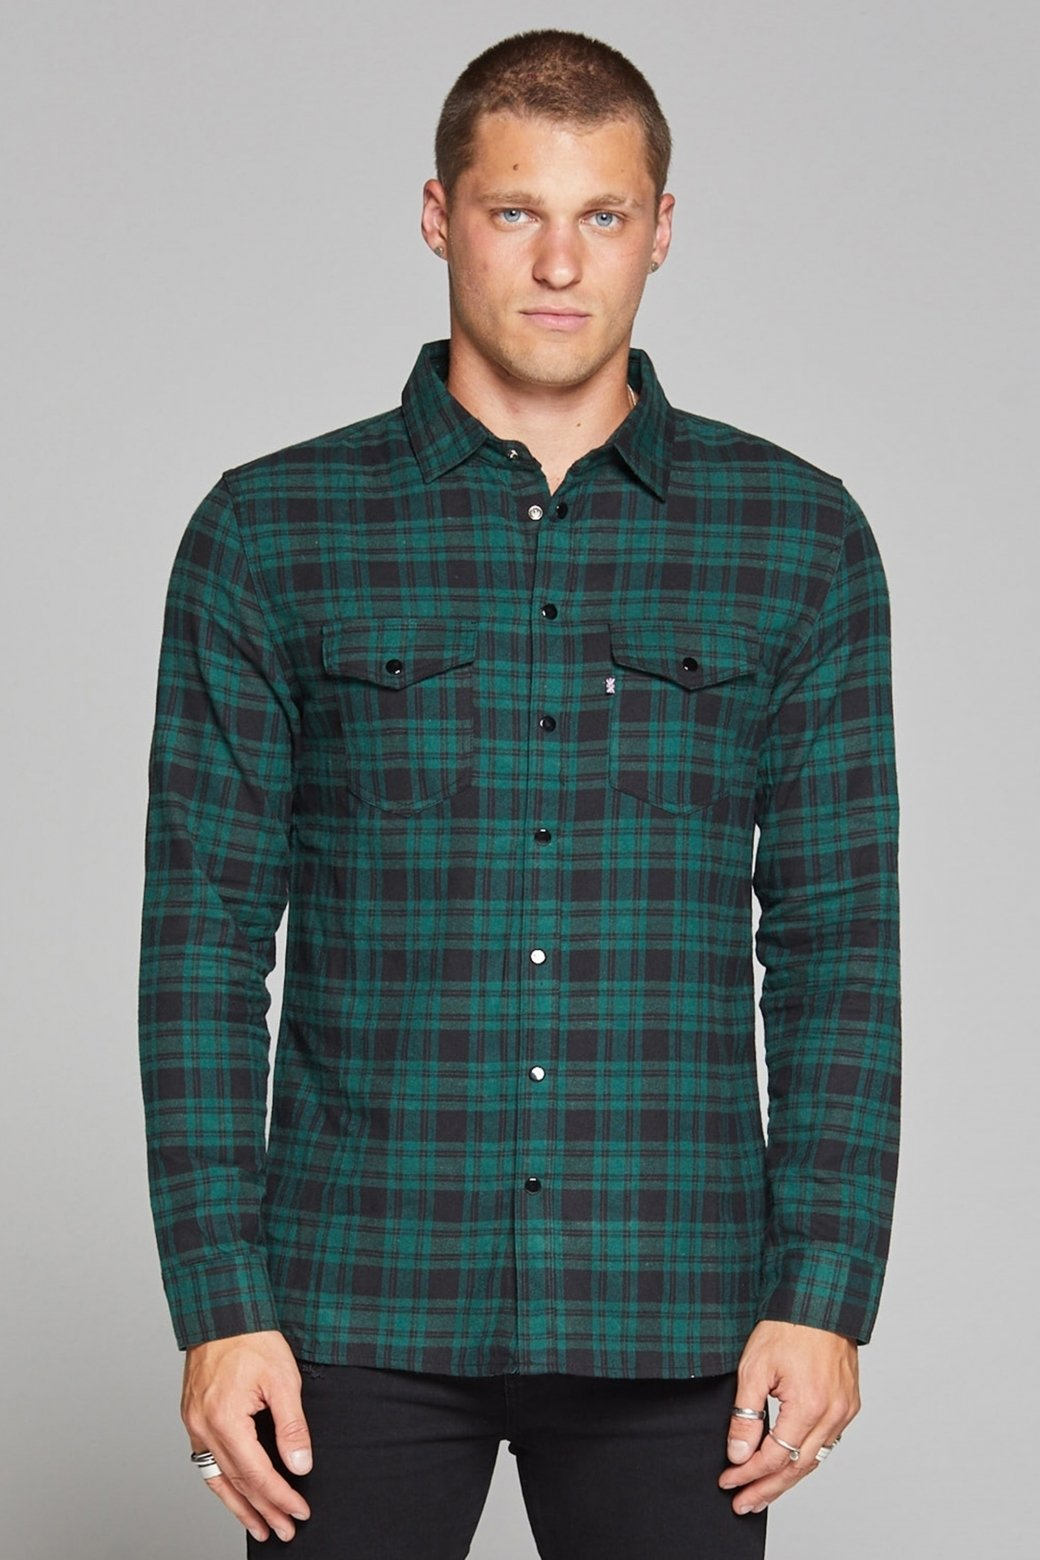 Check Flannel Green Shirt Buy Good For Nothing available in store USA Fresh Clothing DC Washington DC